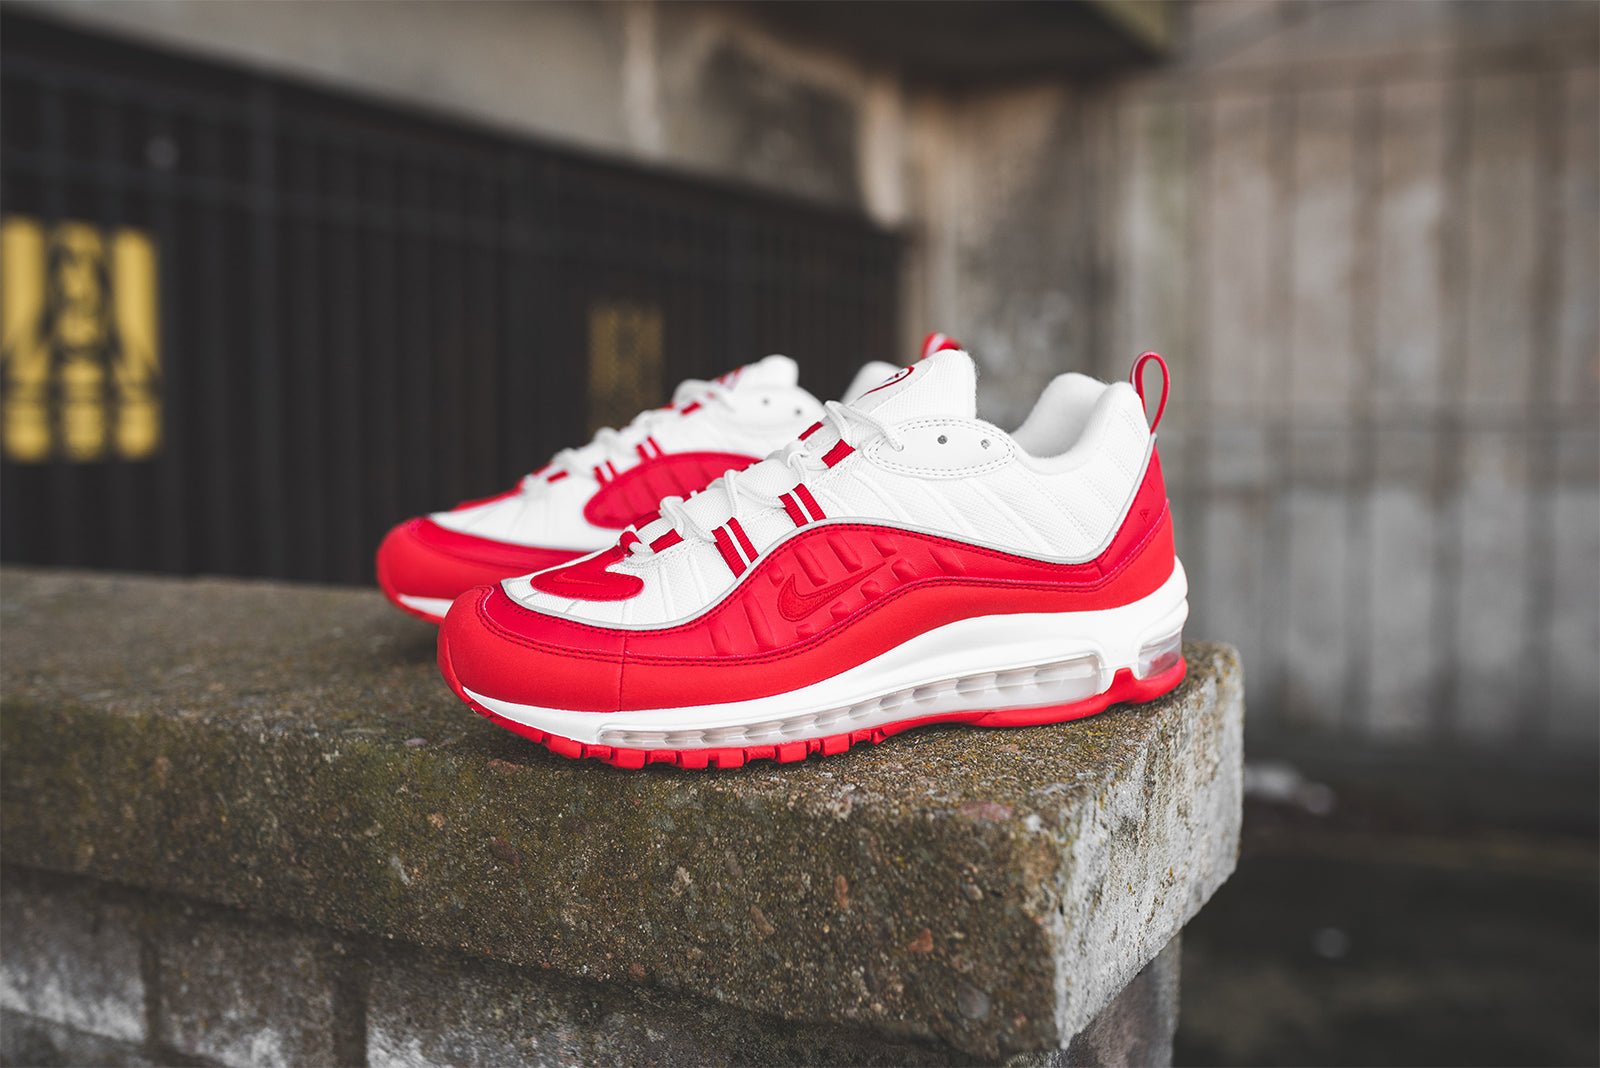 sports shoes a11d4 de8c9 Nike Air Max 98 640744-602. University Red   University Red   White Price   £145.00. Launch  Friday 25th of January ONLINE  08 00GMT